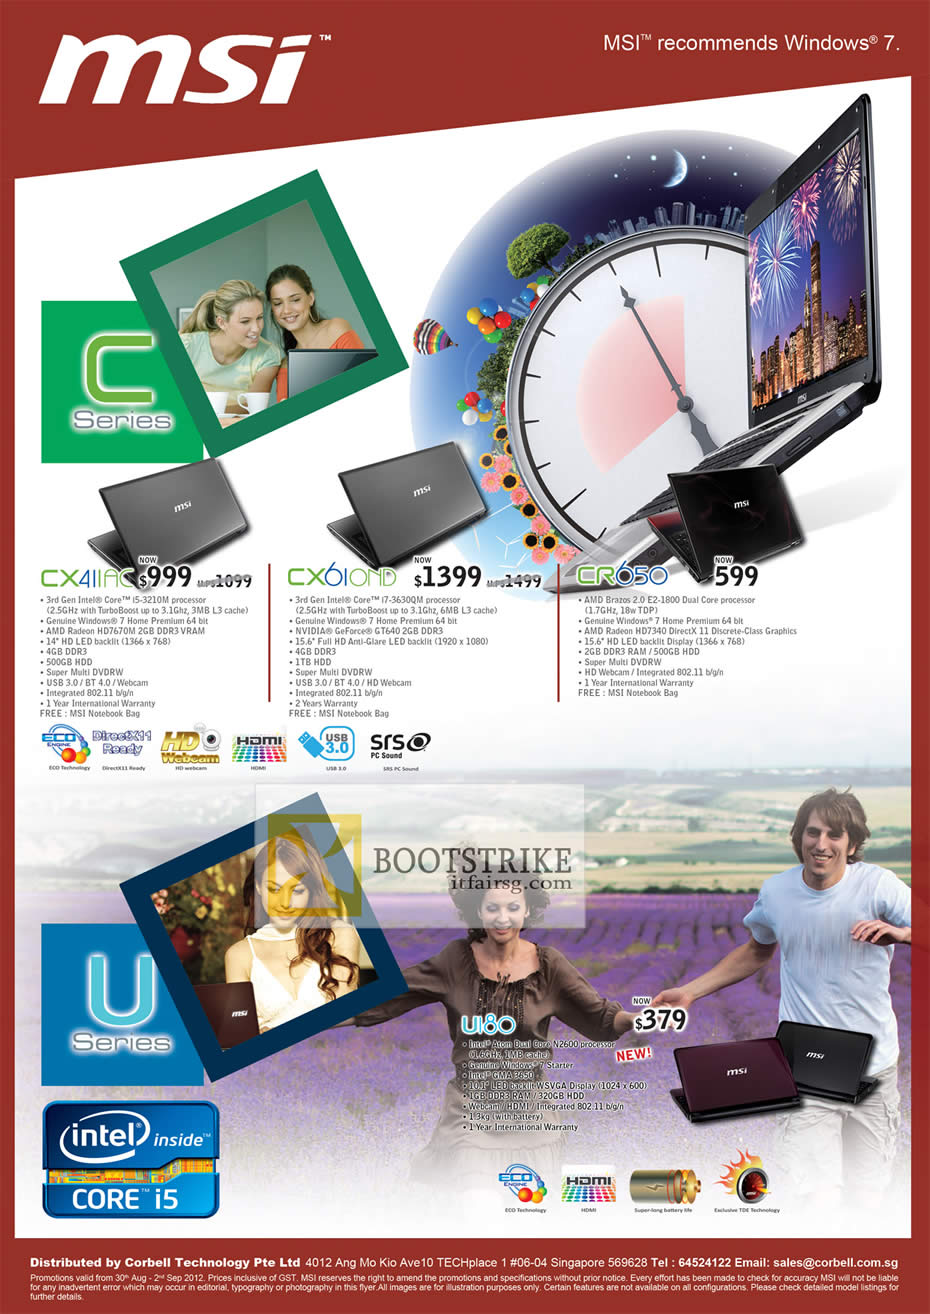 COMEX 2012 price list image brochure of Corbell MSI Notebooks CX411AC, CX6I0ND, CR650, UI80